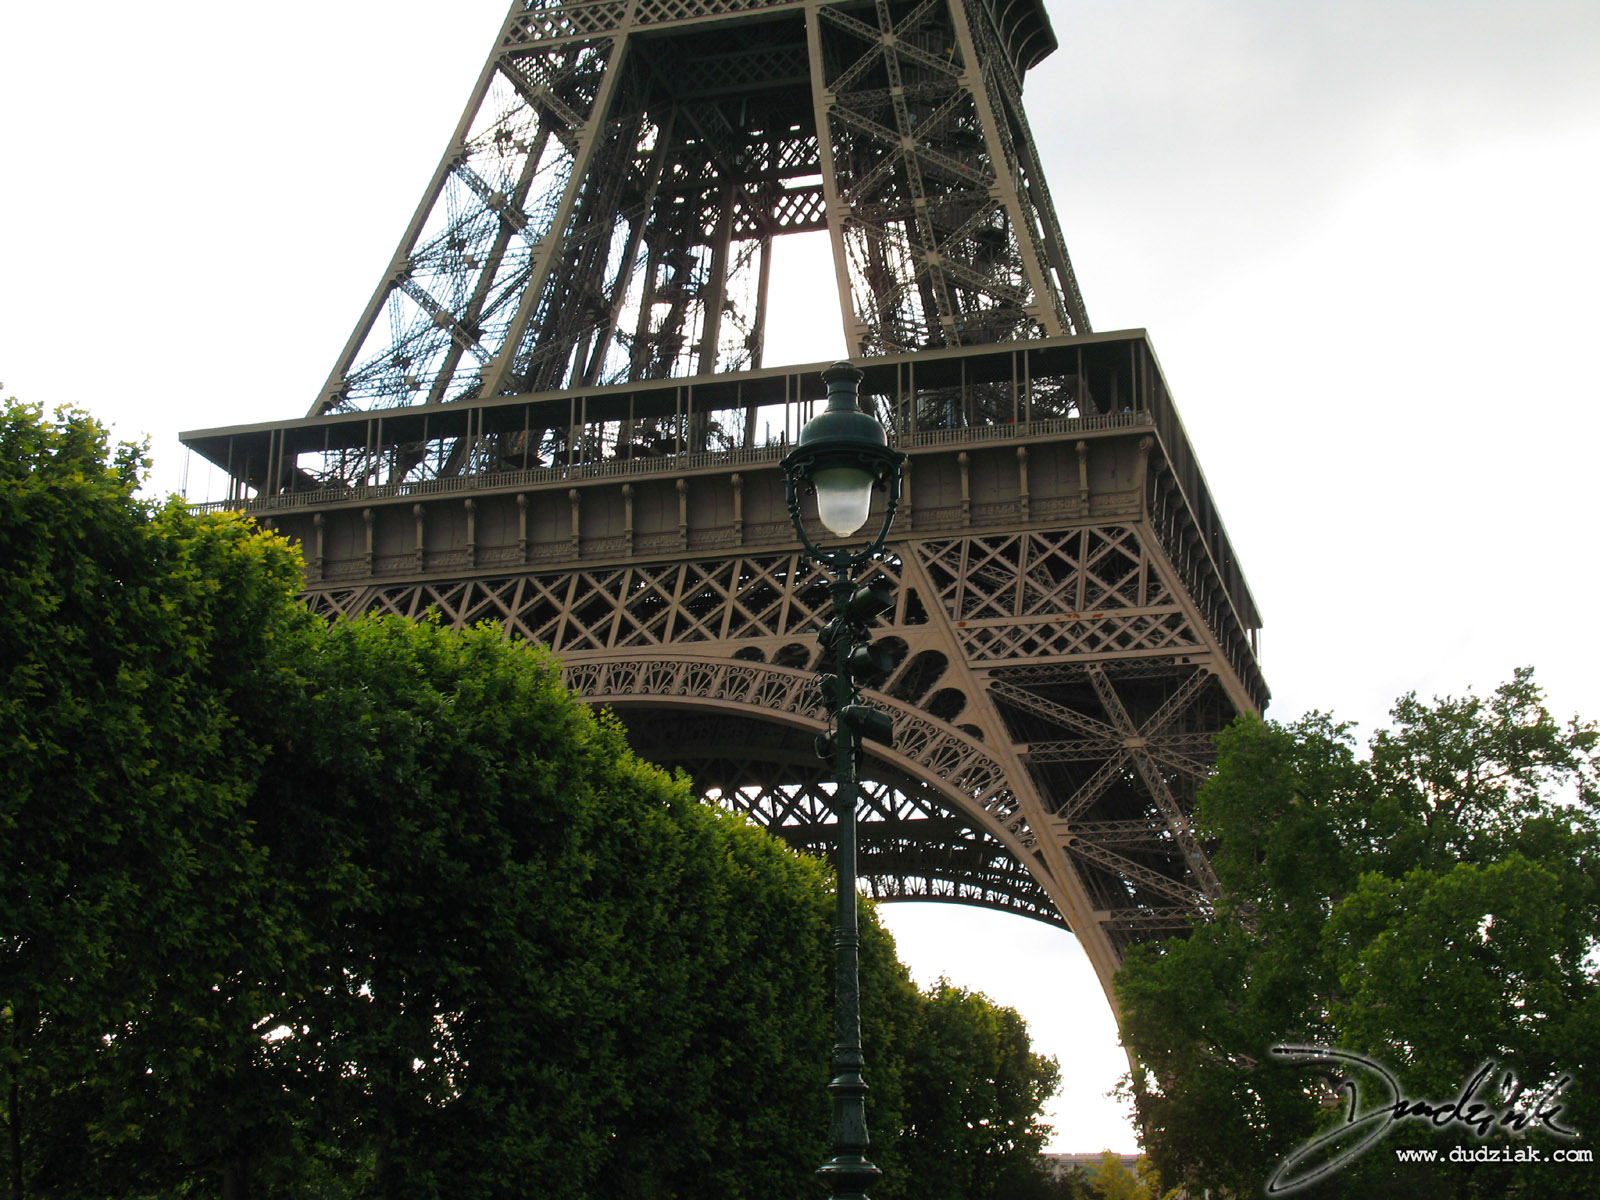 Eiffel Tower,  First Level,  Paris France,  Middle of the Eiffel Tower